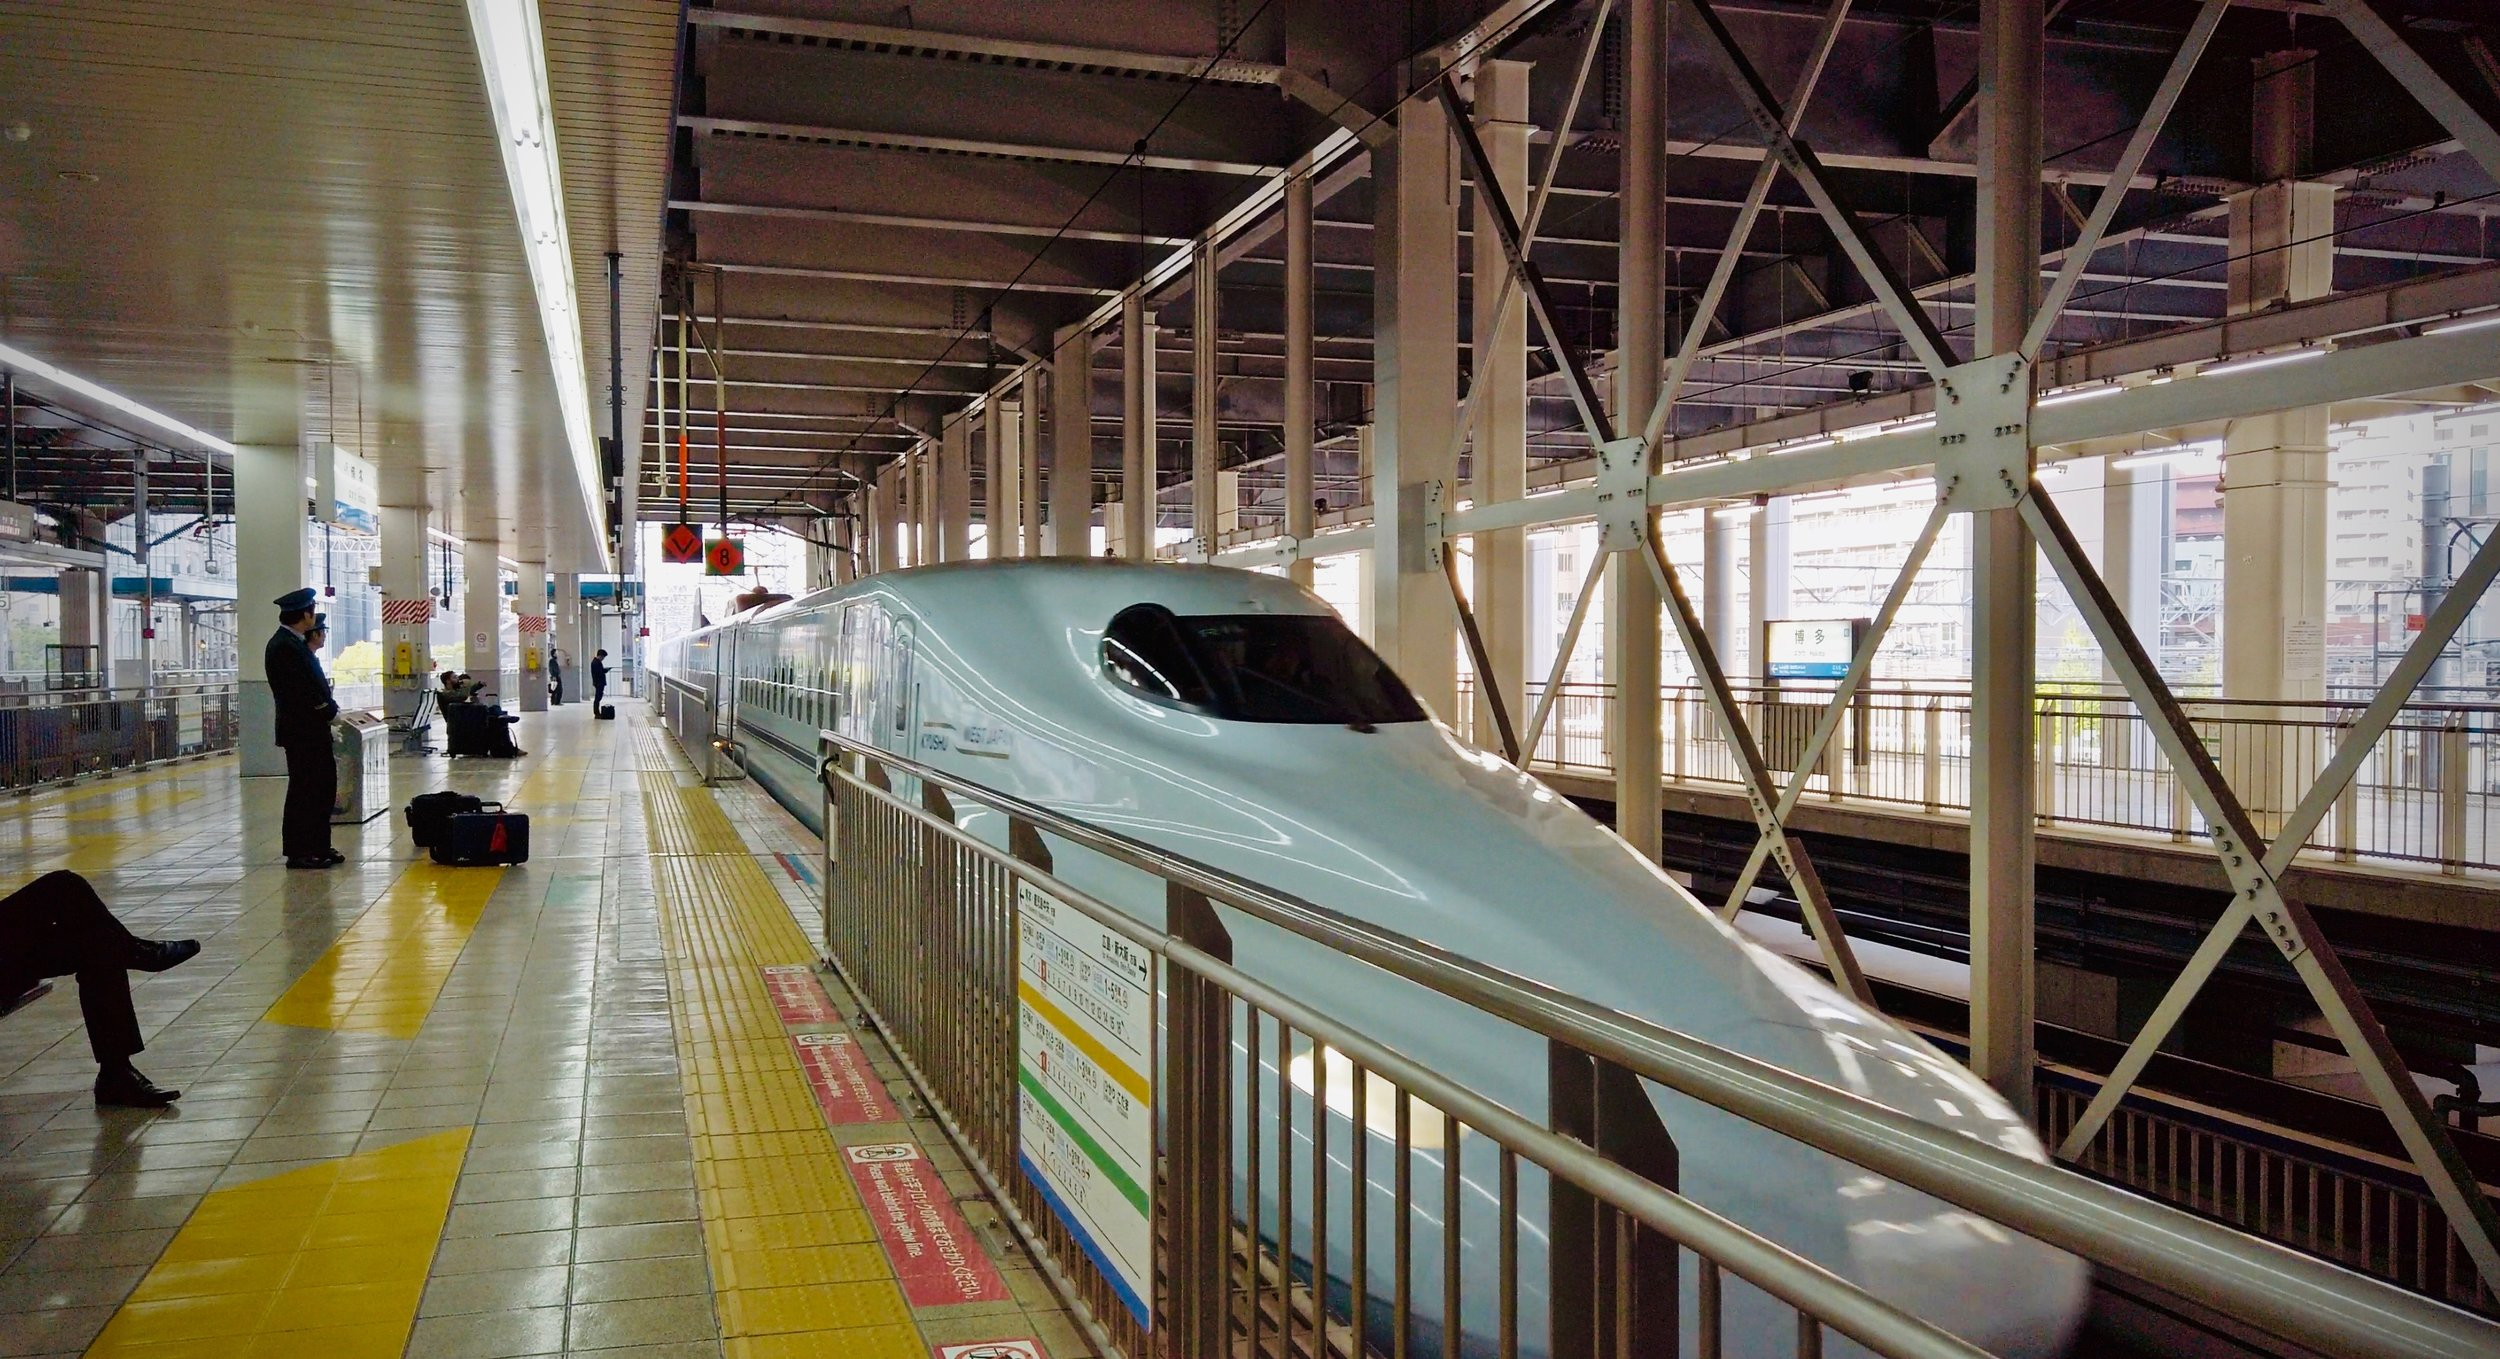 The JR Pass will let you ride on the Shinkansen, Japanese Bullet Trains unlimited.